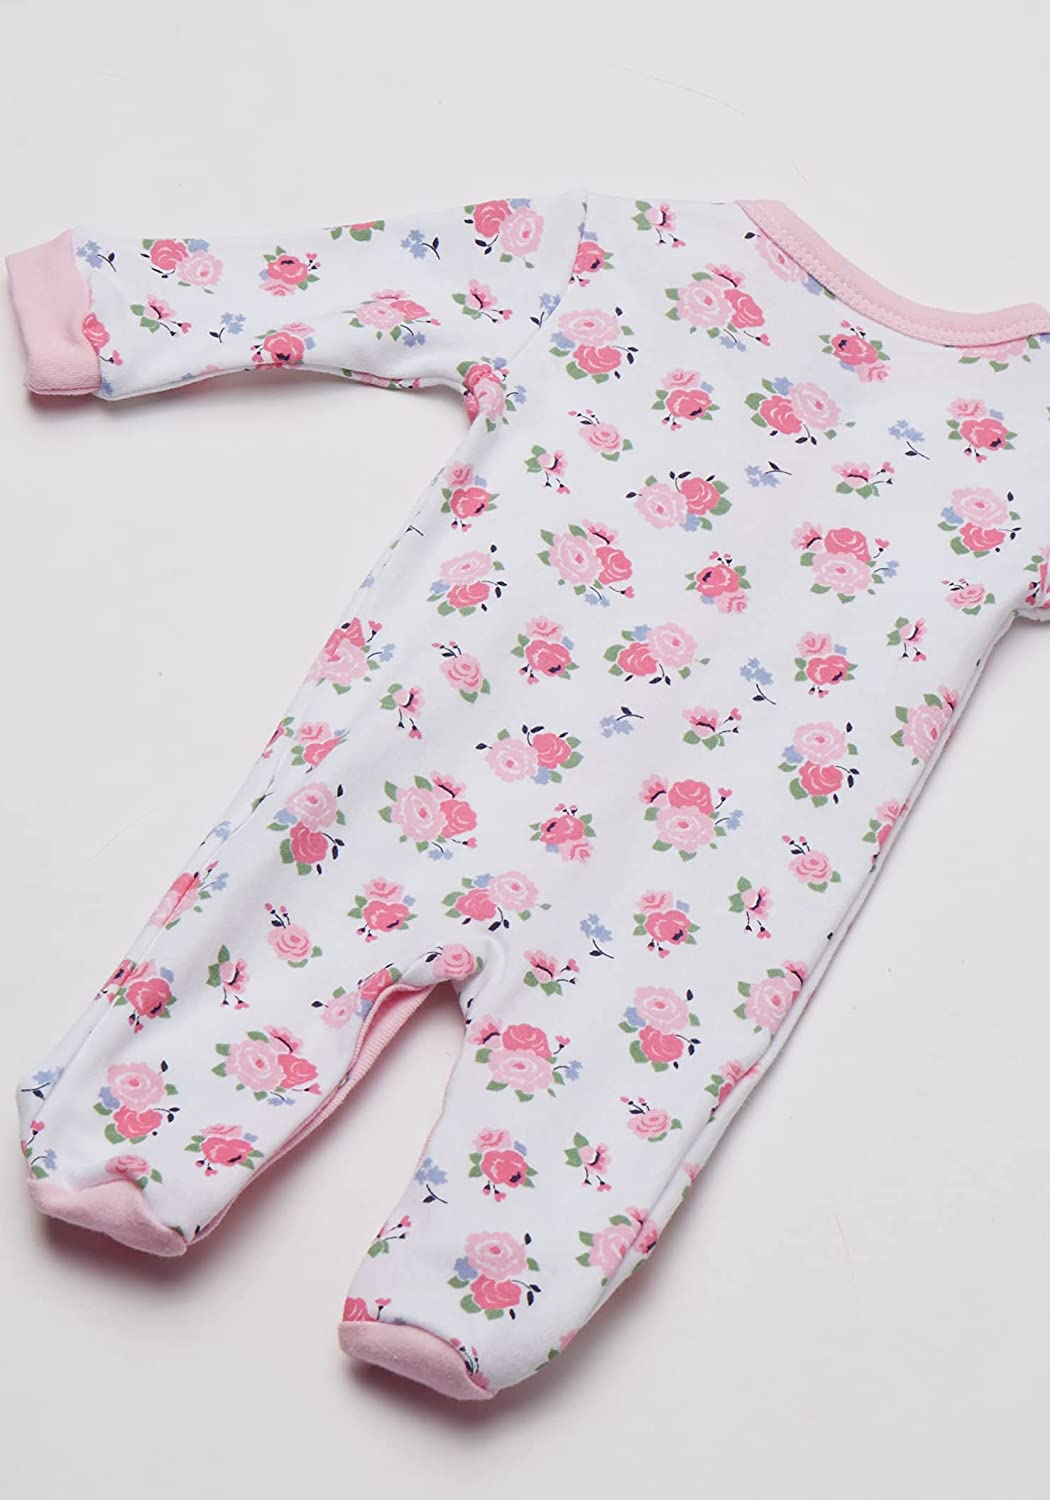 Luvable Friends Unisex Baby Cotton Preemie Sleep and Play and Cap